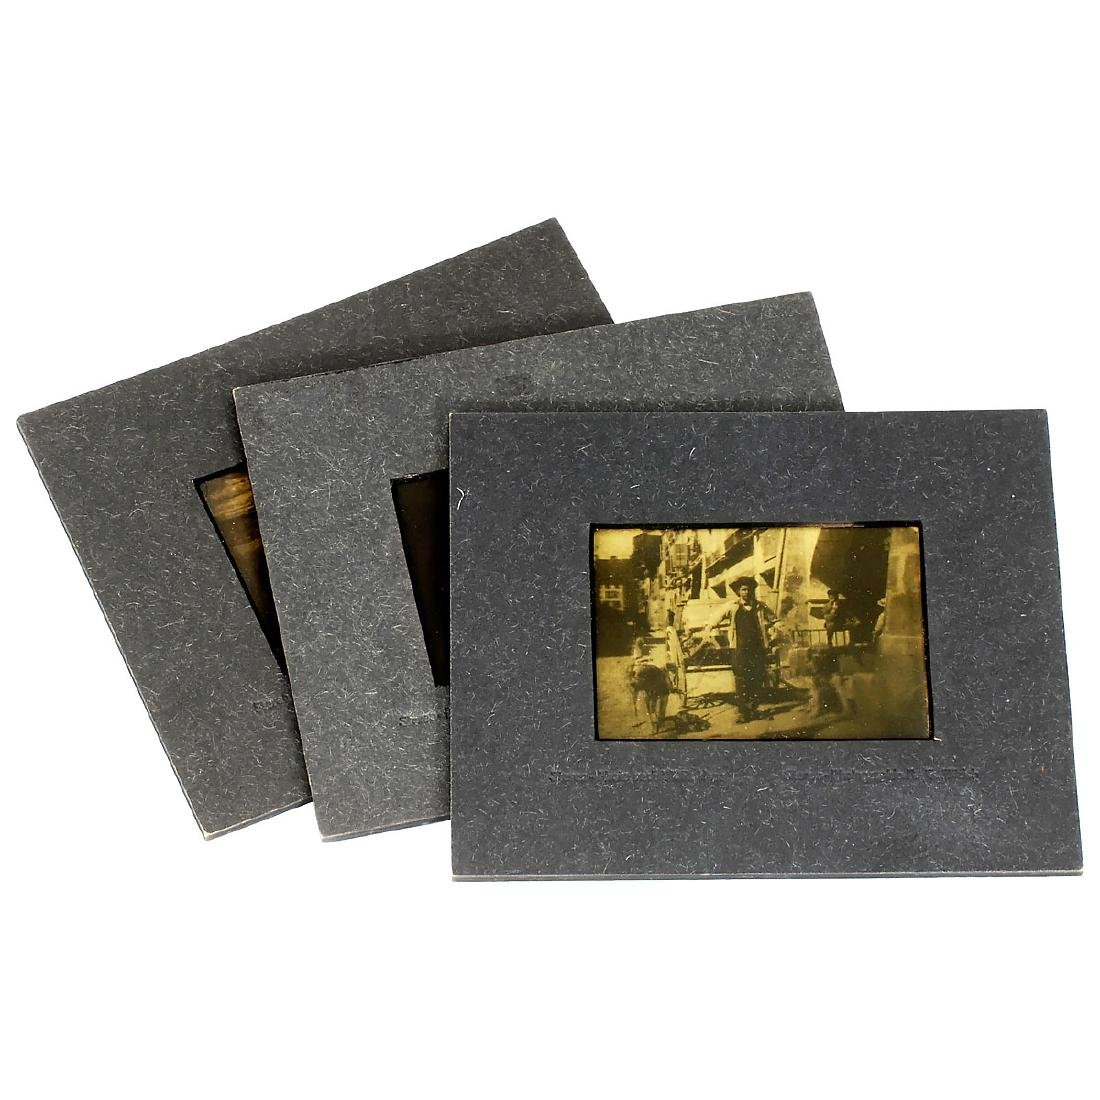 3 x 3D Lenticular Picture by W.R. Hess, c. 1912 - 2